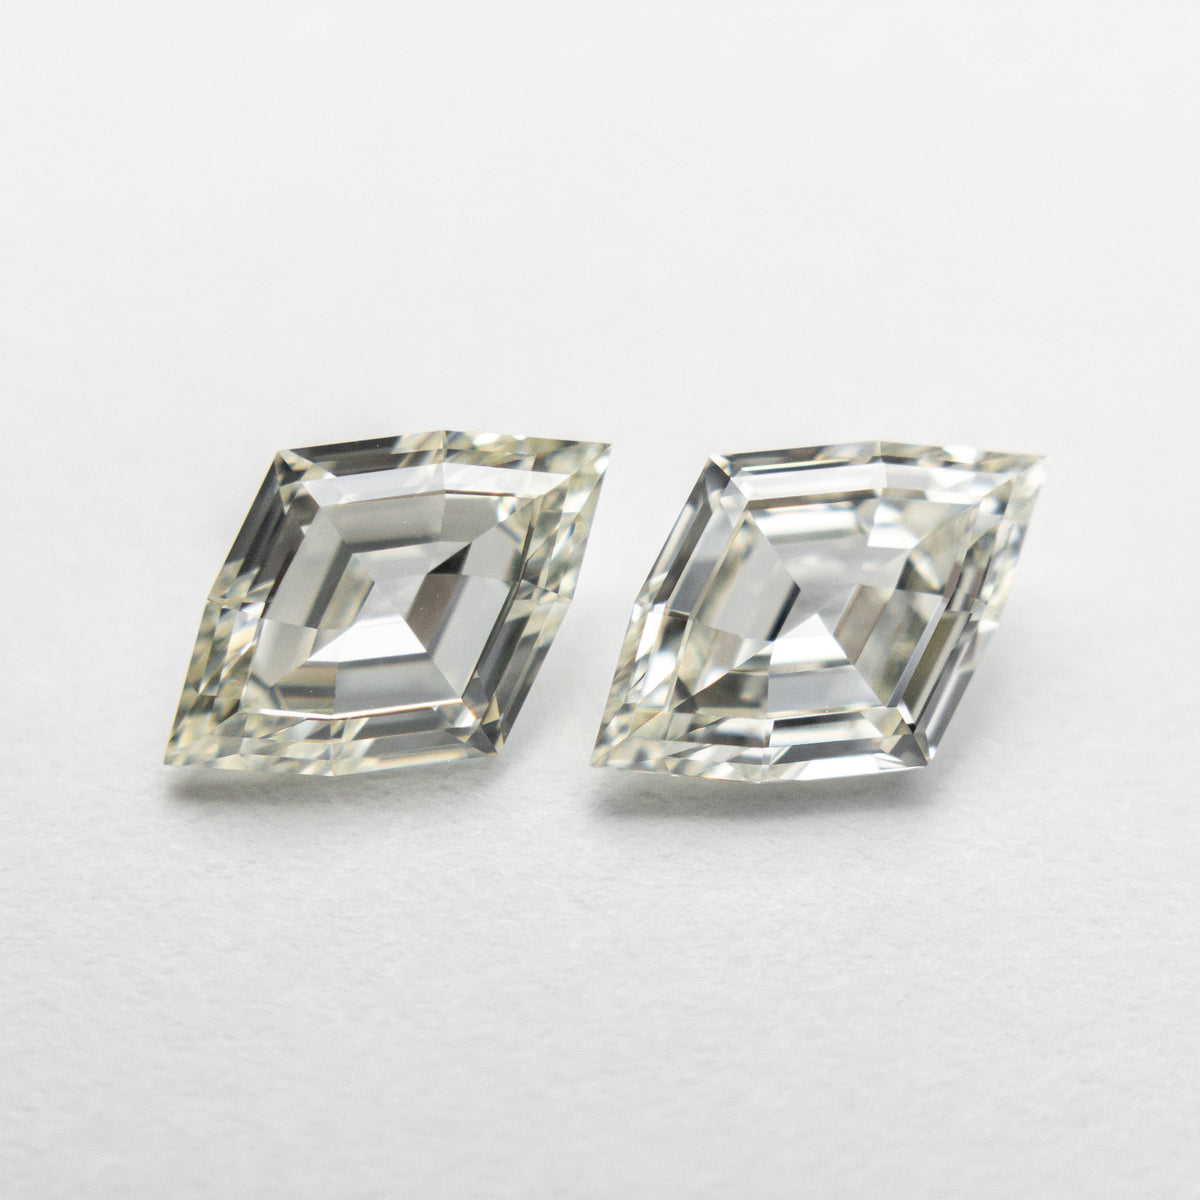 1.41ct 8.49x5.71x2.56mm VS/SI O-P Lozenge Step Cut Matching Pair 18877-01